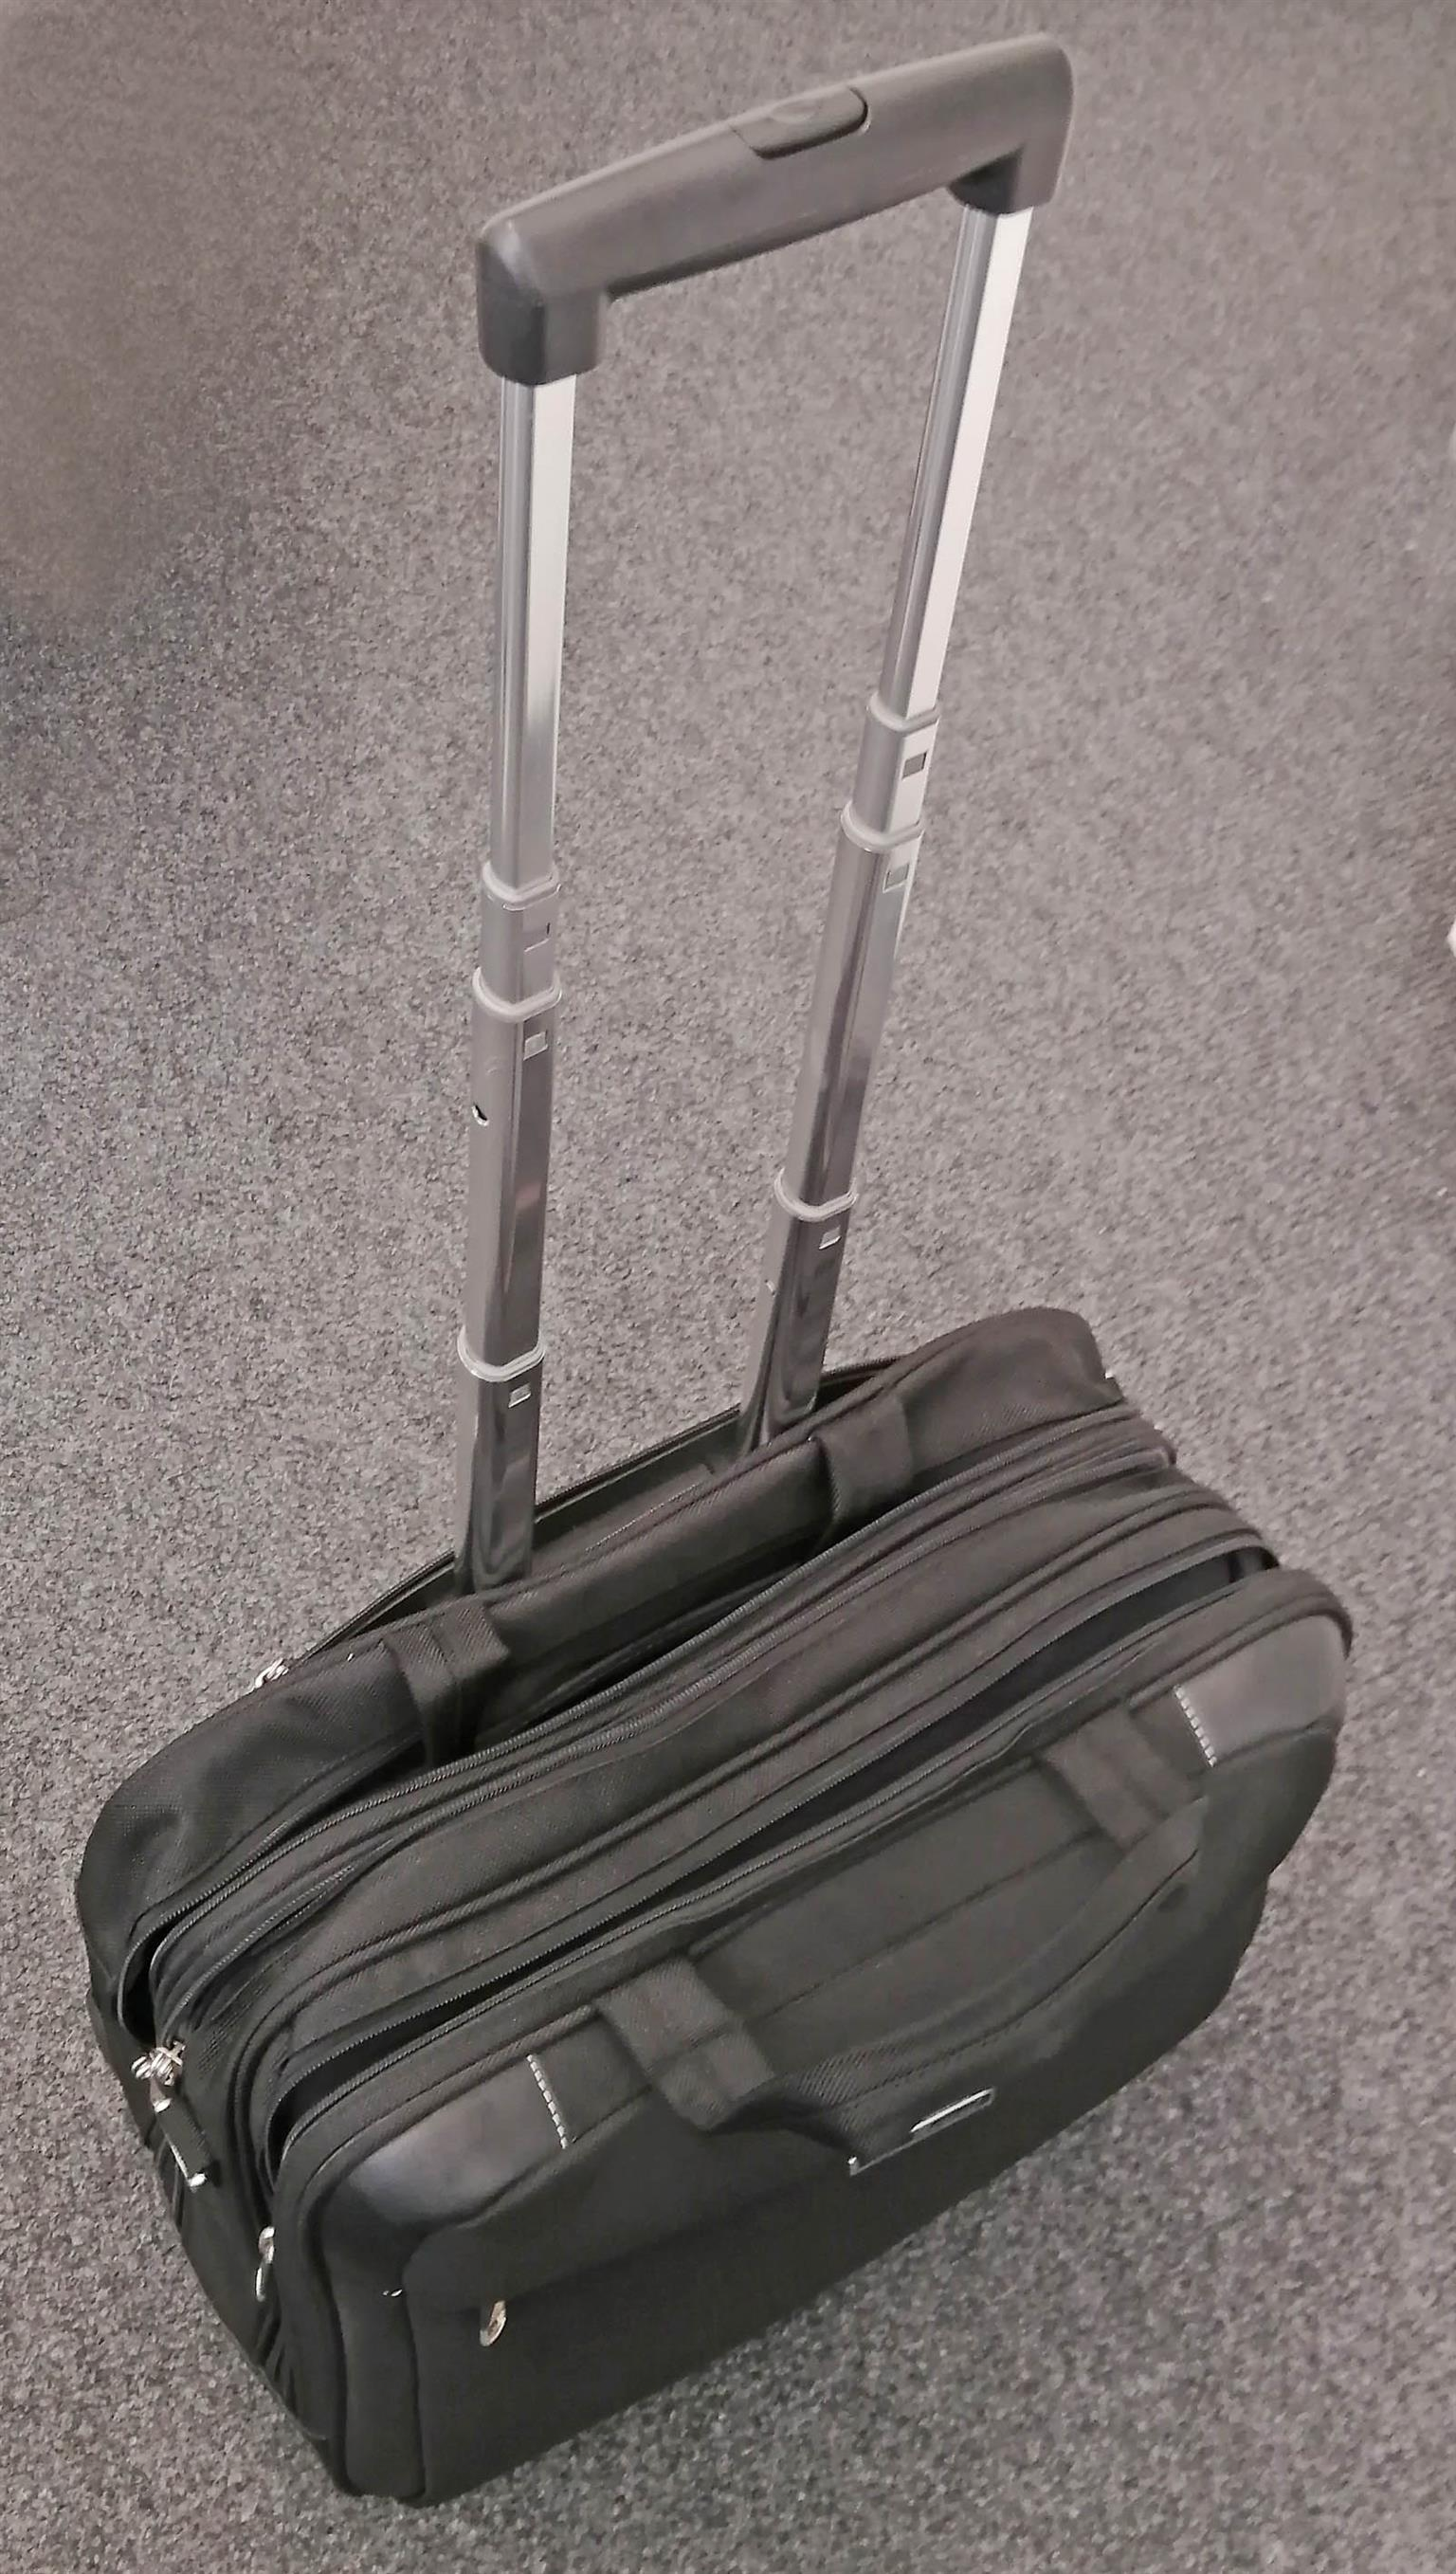 Computer bag with four compartments and wheels